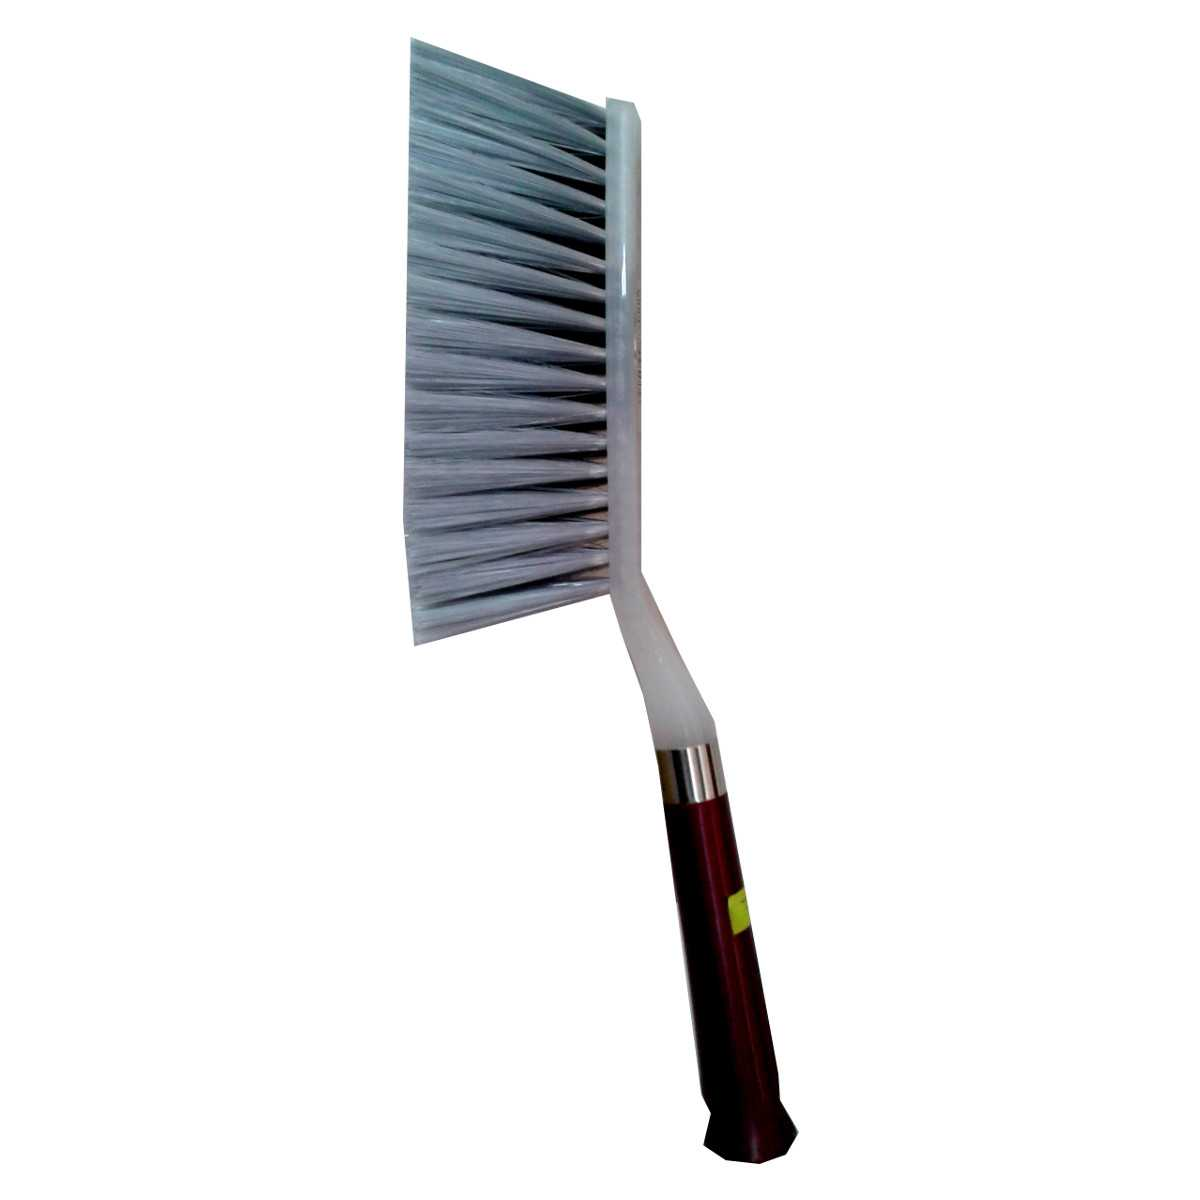 "Soft Bed Brush Merun & Ash (14""x1.5"") China 1 pcs"